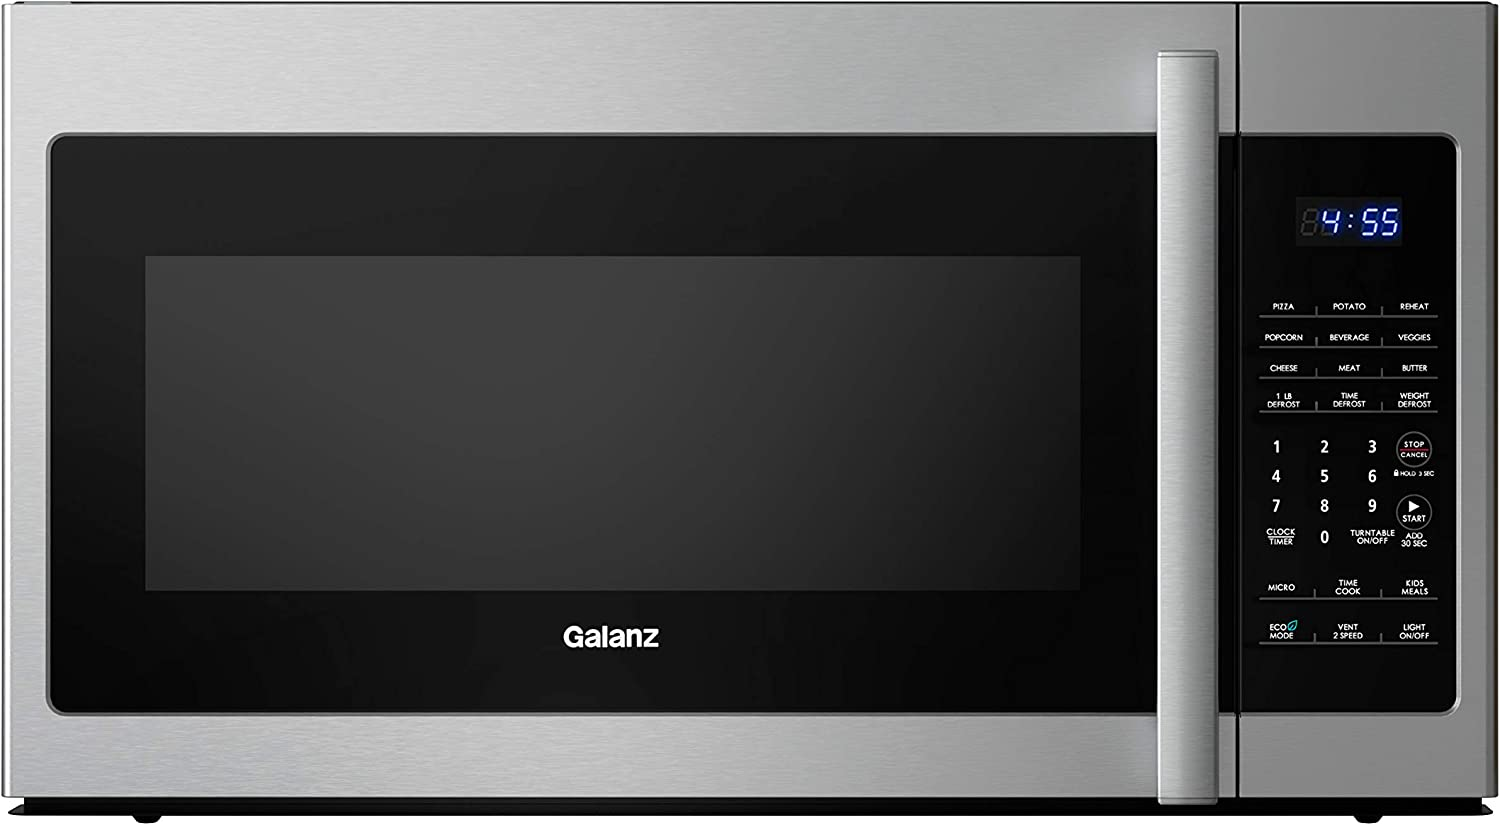 Galanz GLOMJA17S2B-10 Over-The-Range Microwave, Energy Saving/ECO Mode, 30-second Express Cooking, 9 Auto-cook Programs, 1000W/120Volts, 1.7 Cu.Ft, Stainless Steel